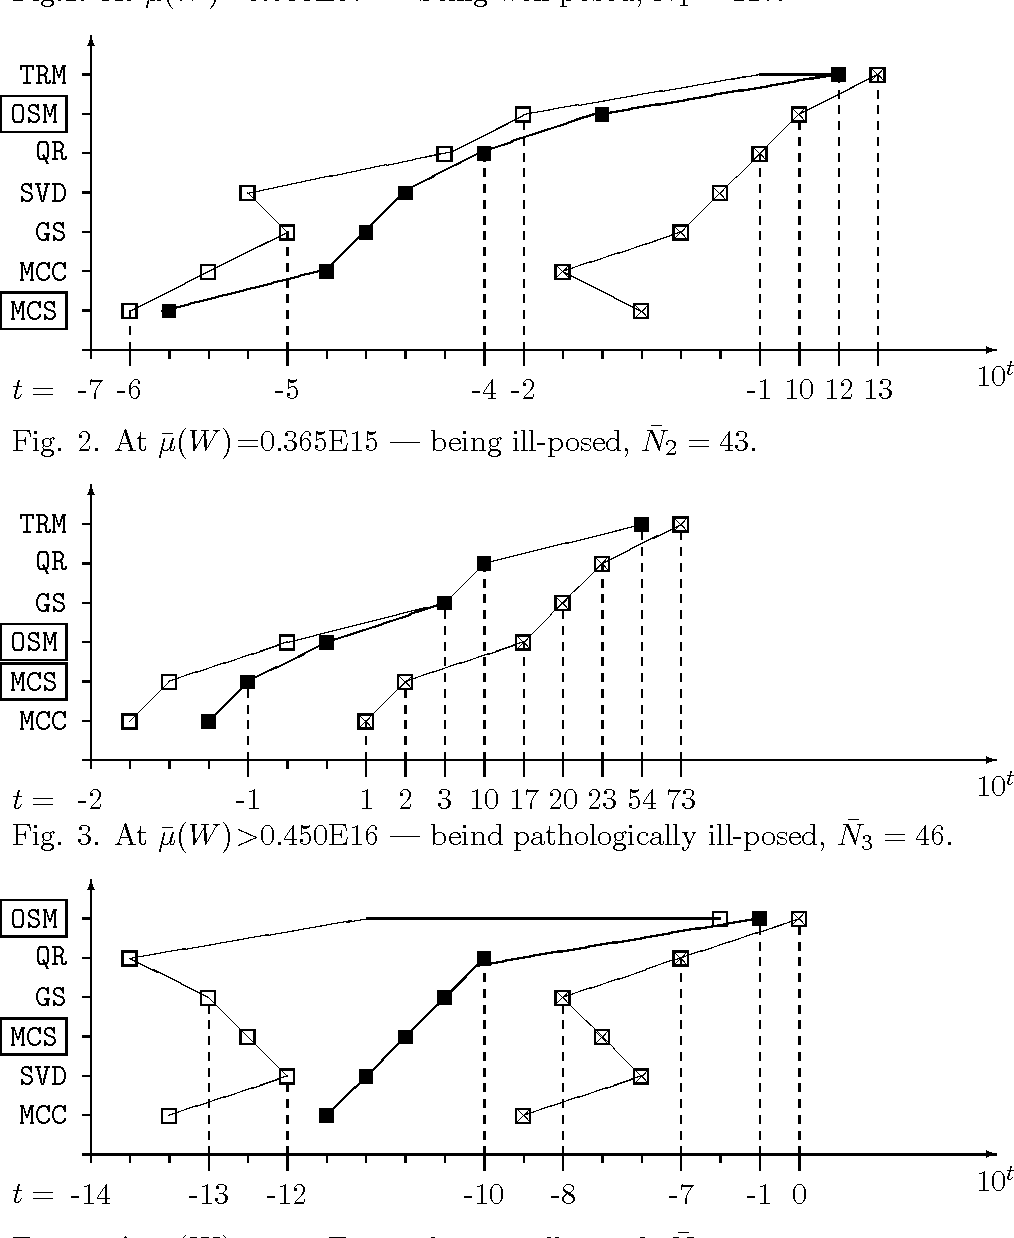 Fig. 3. At µ̄(W )>0.450E16 — beind pathologically ill-posed, N̄3 = 46.